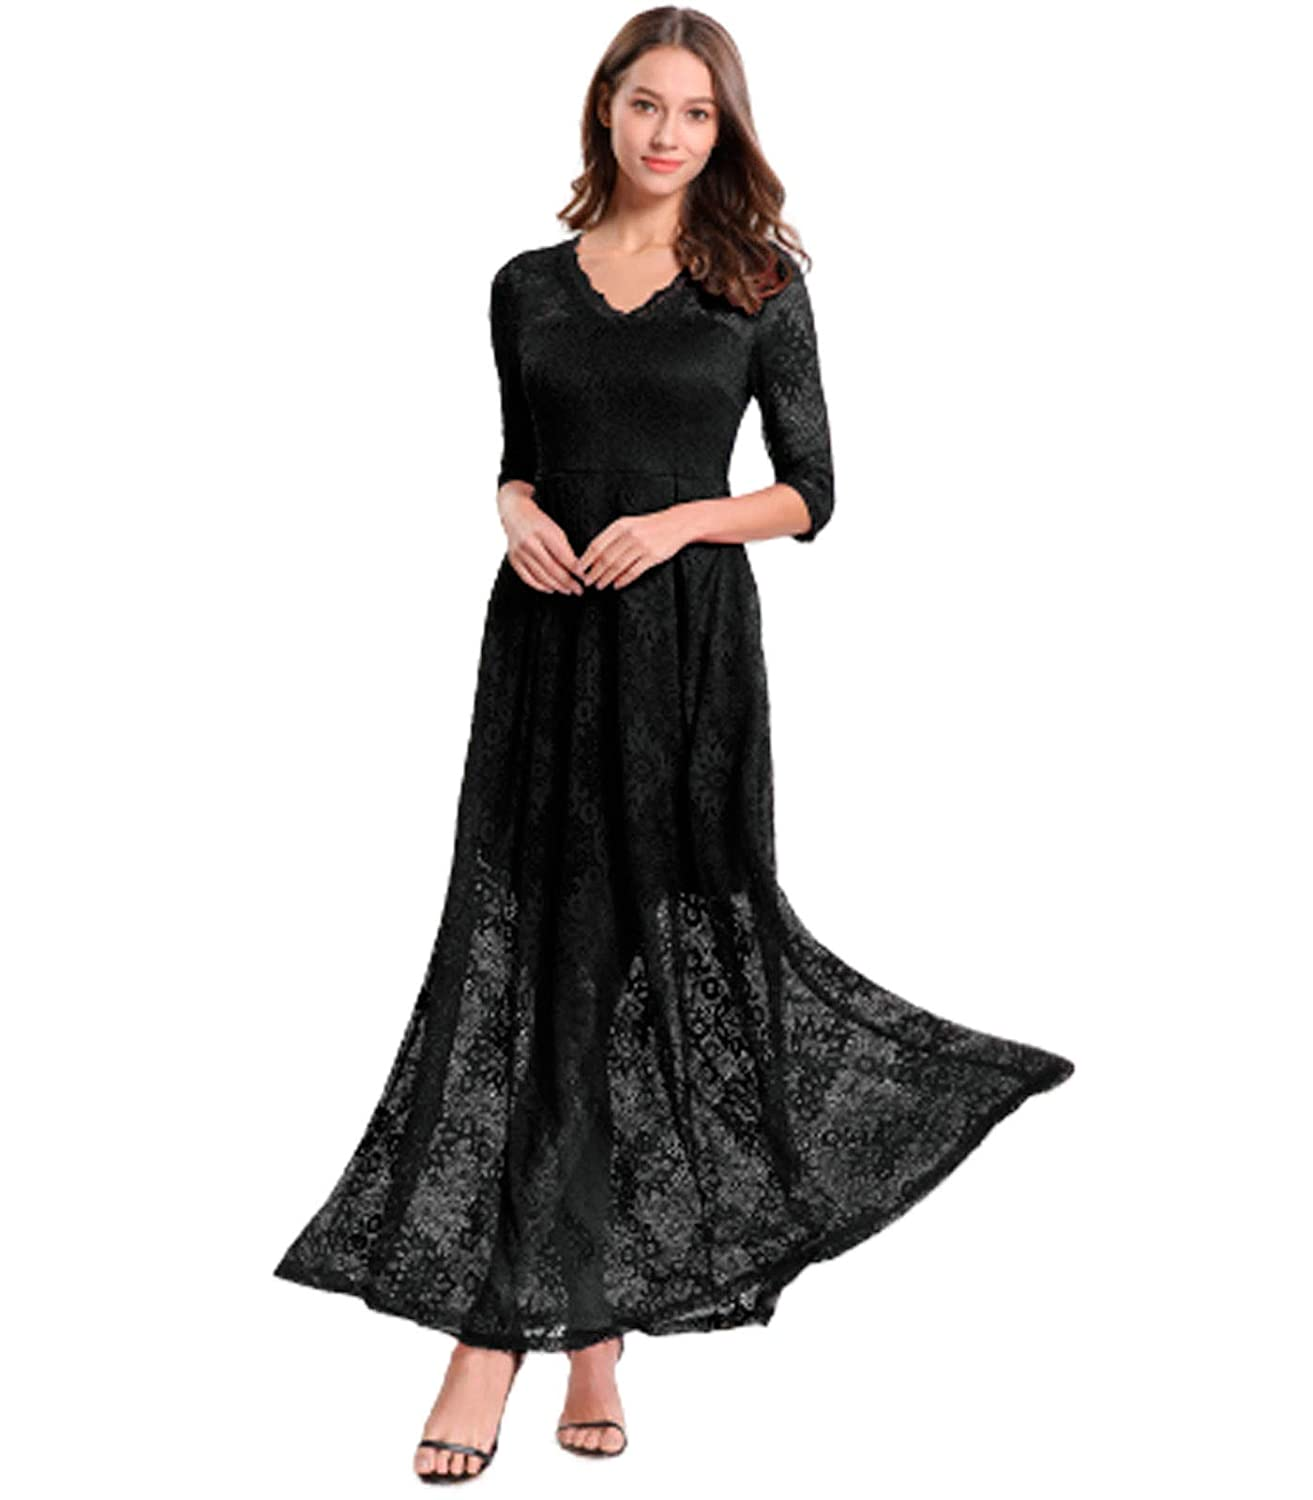 3dfbbf38832 Convallaria Women  s V- Neck Vintage Floral Lace Long Dresses with Half  Sleeve for Wedding Cocktail Evening Party at Amazon Women s Clothing store